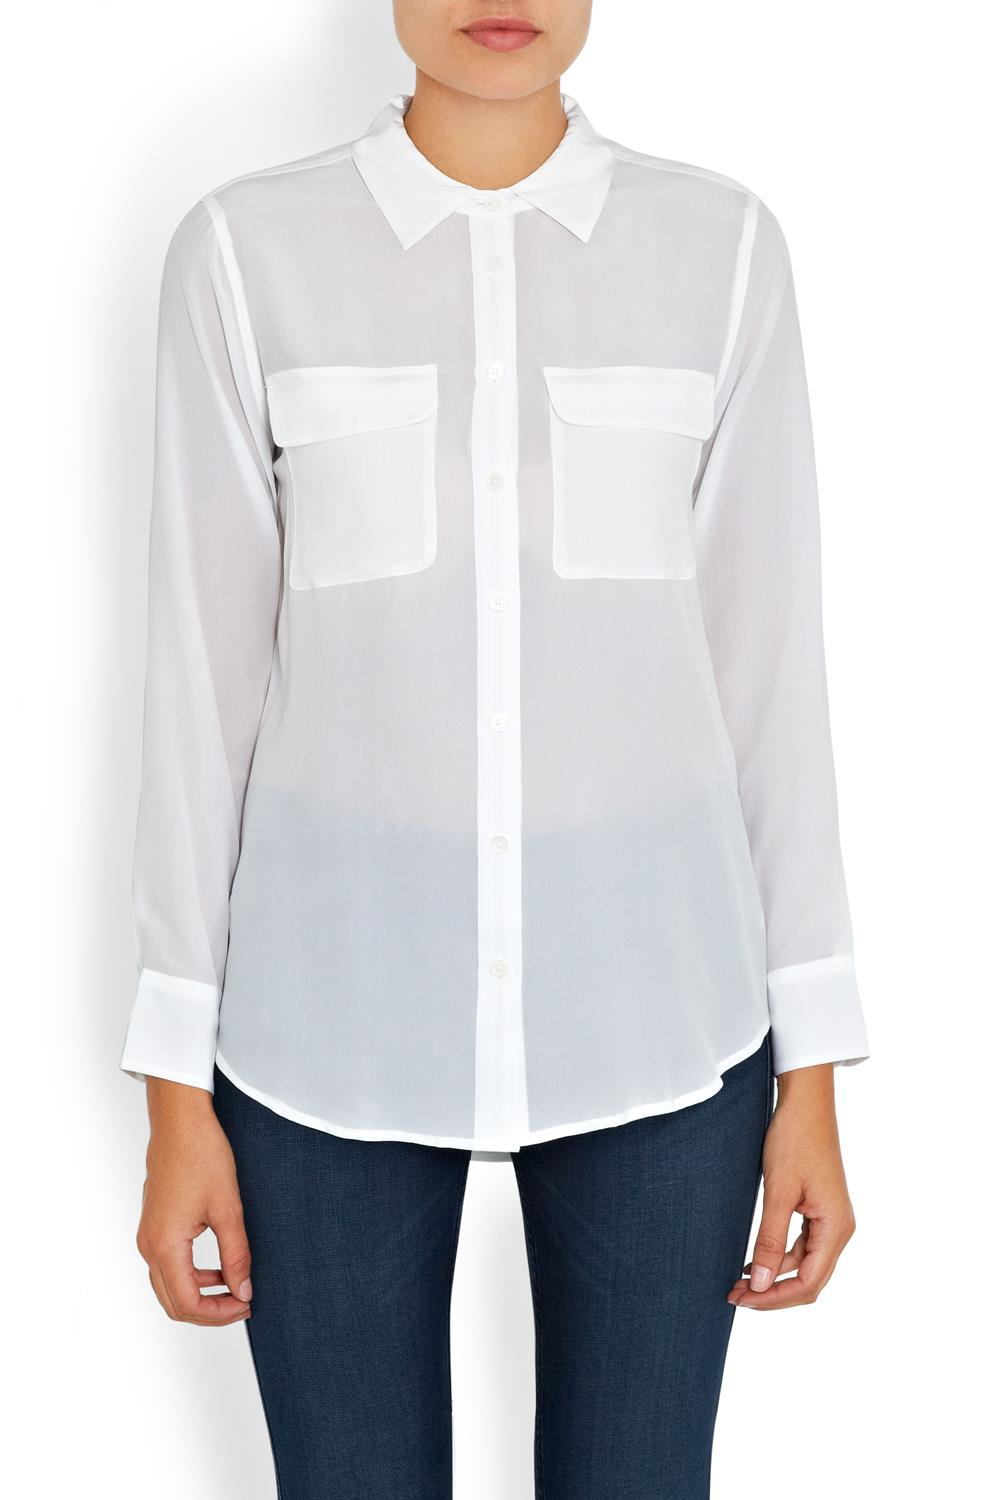 Slim Signature Shirt  (100% silk) by  Equipment , £225 at Trilogy Stores